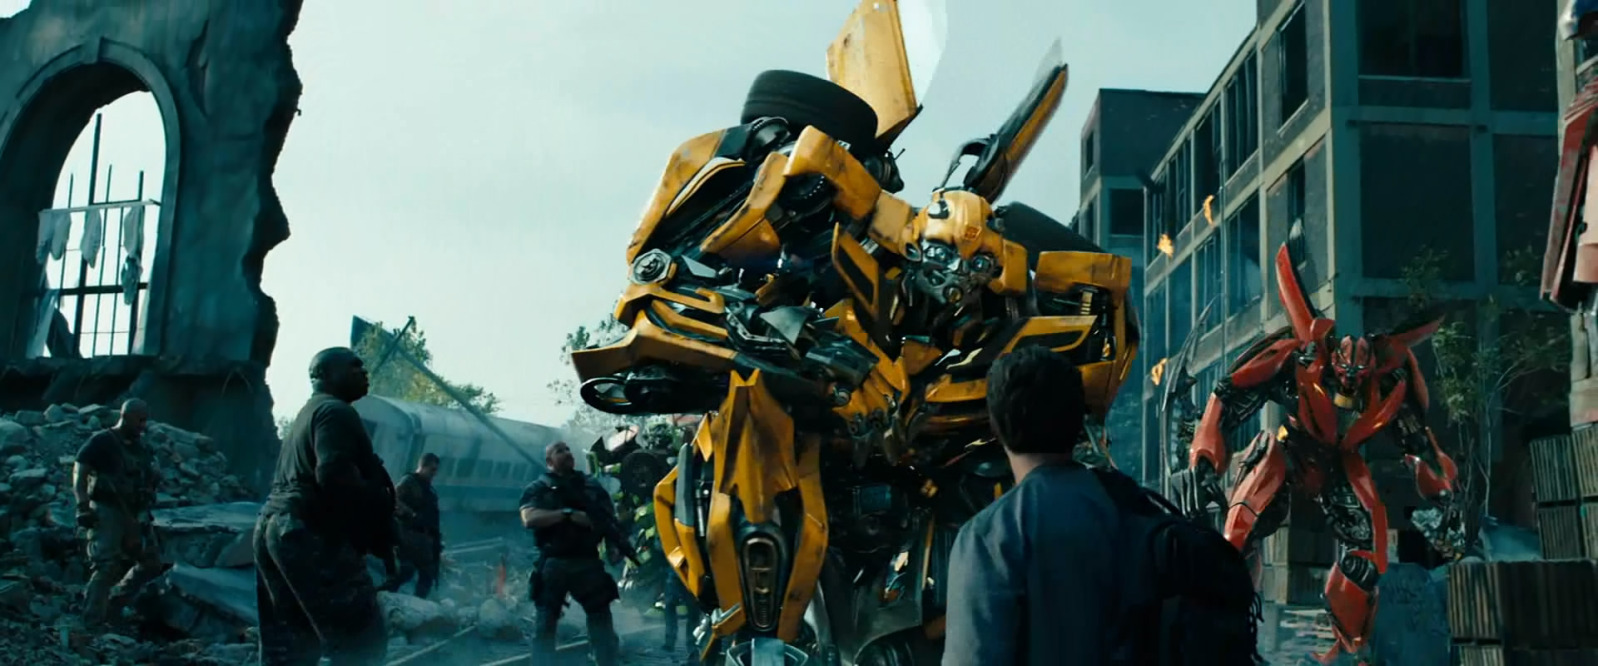 image - dotm-autobots-film-return | teletraan i: the